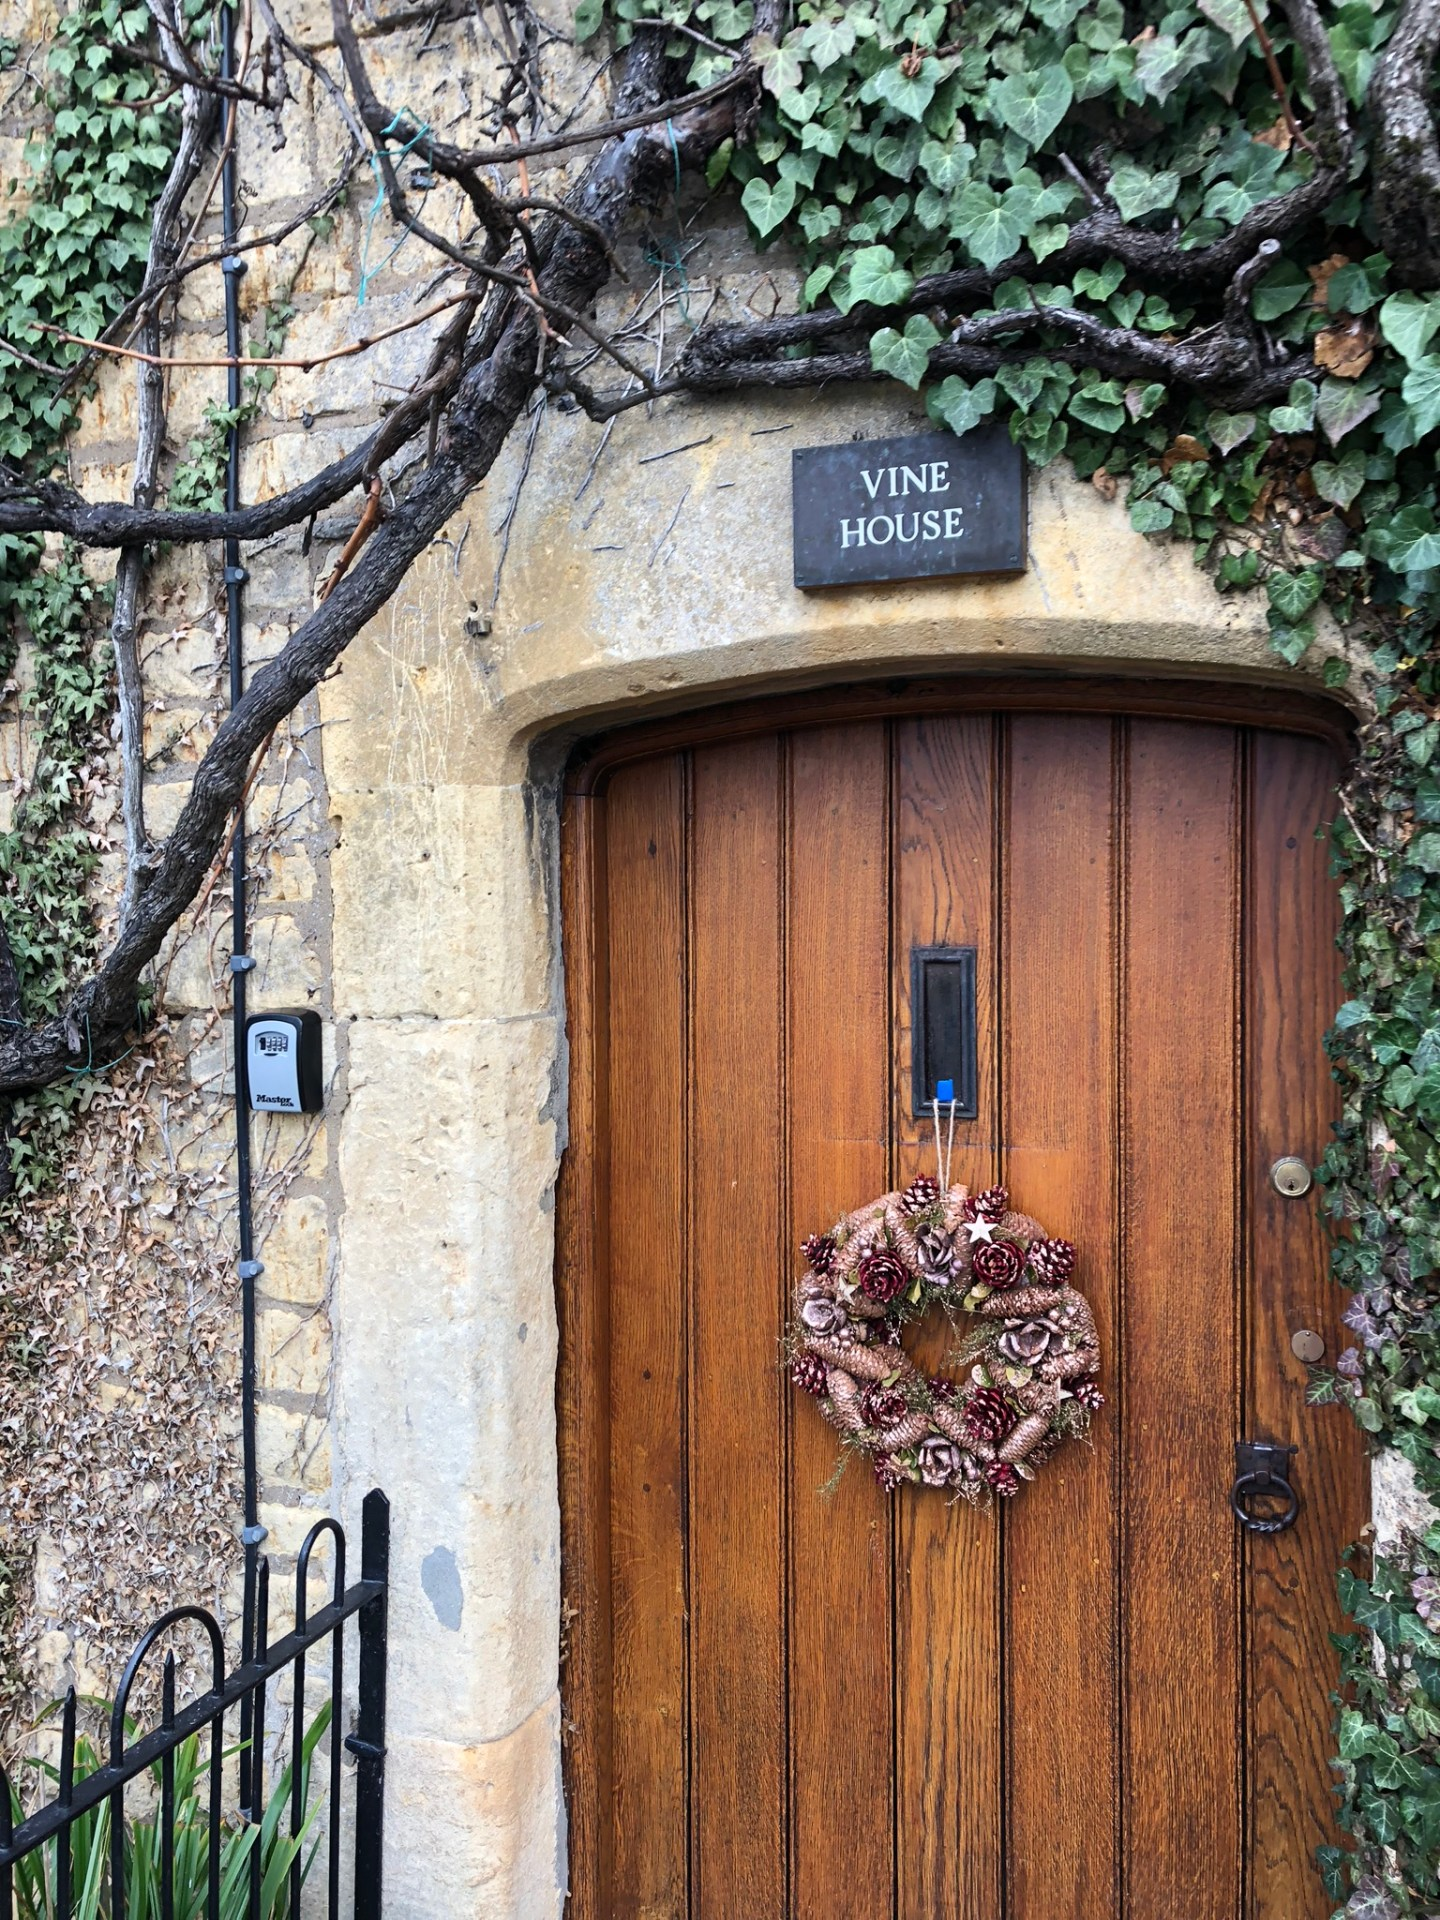 A Christmas wreath on a door in the Cotswolds